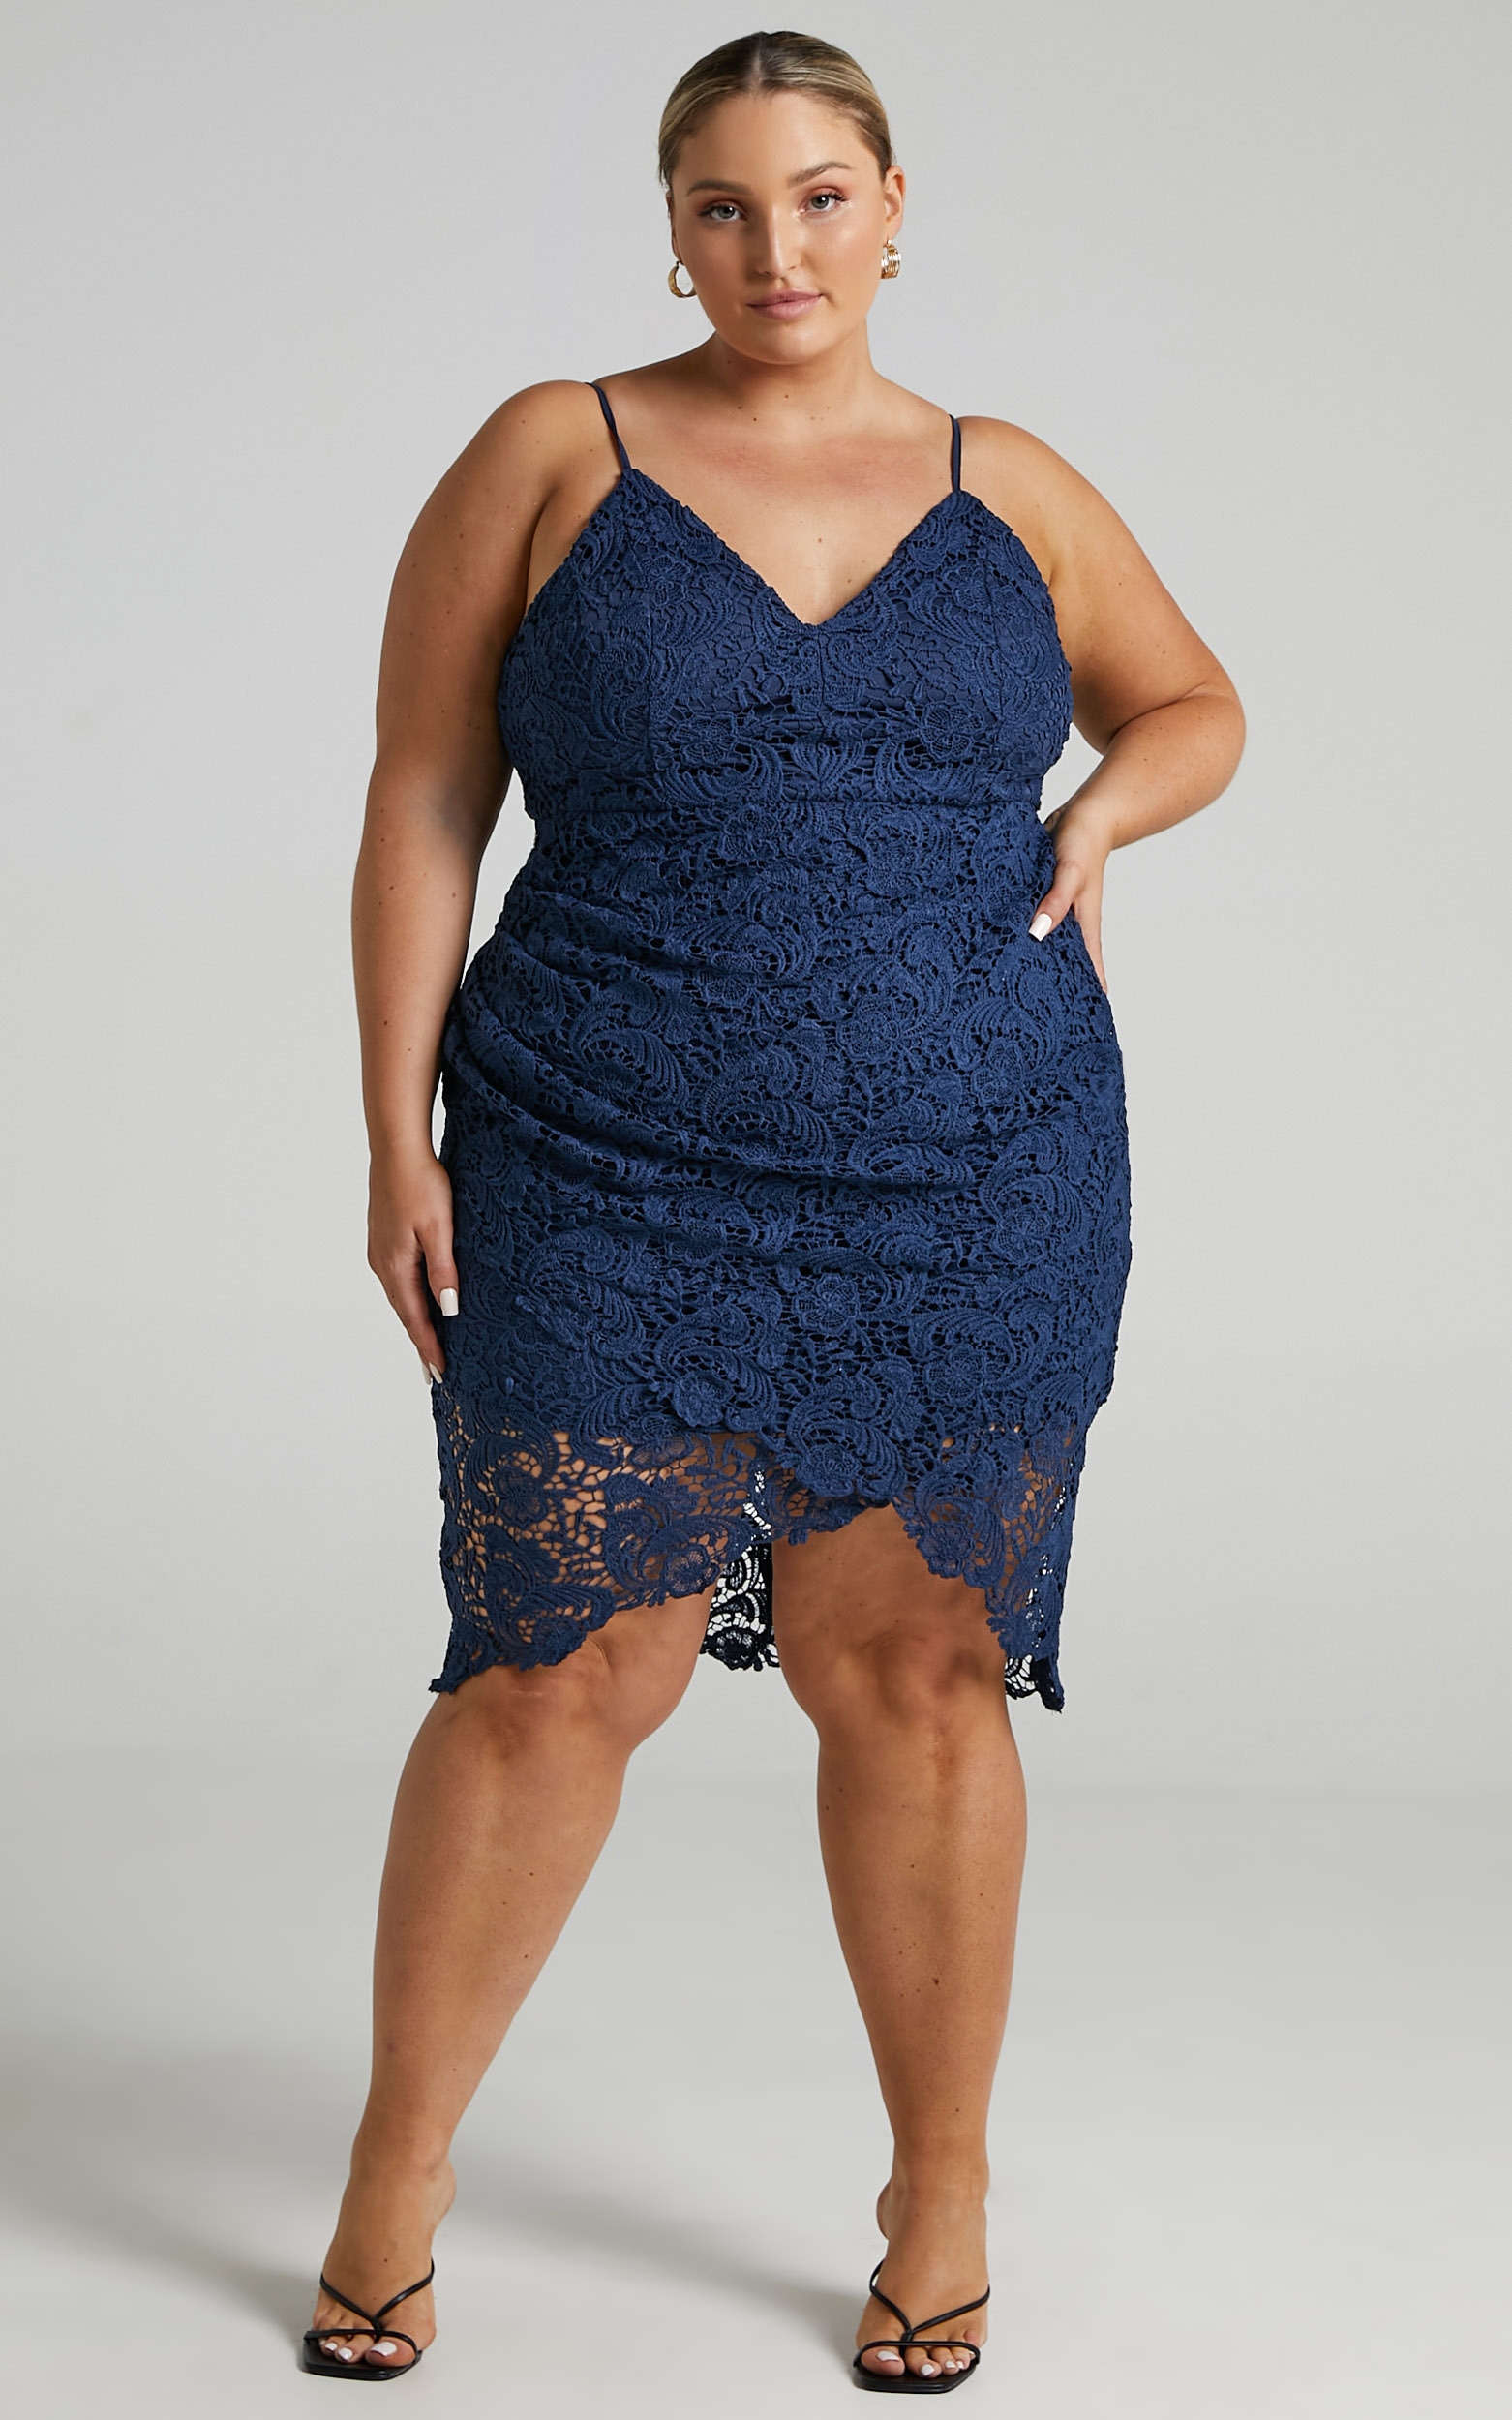 Typical Lover Dress in Navy Lace - 20, NVY1, hi-res image number null